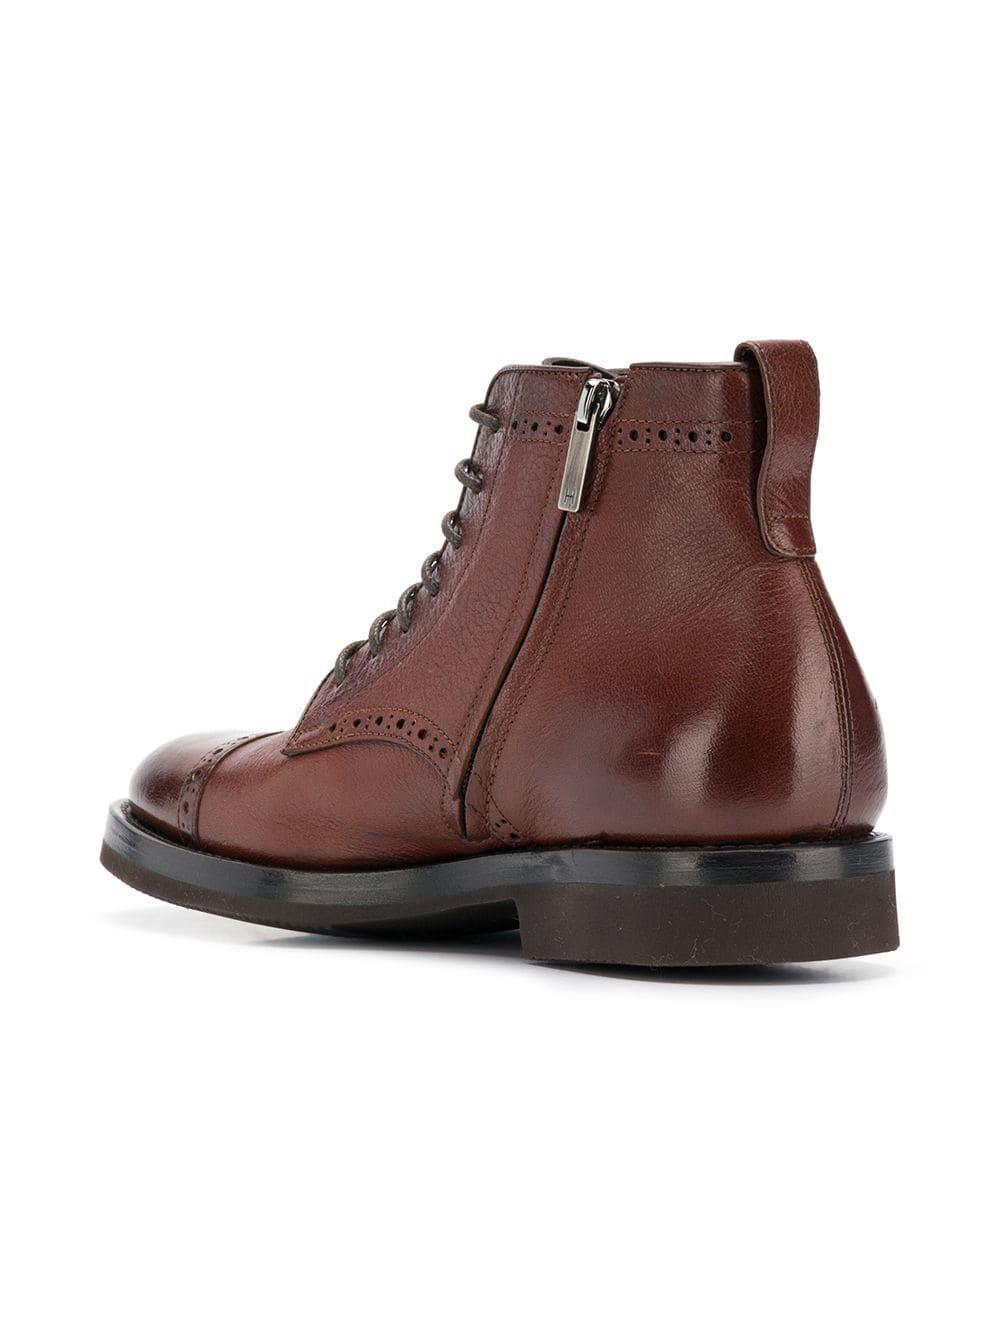 For Henderson In Up Boots Brown Lyst Men Ankle Lace qSUpLzGVjM